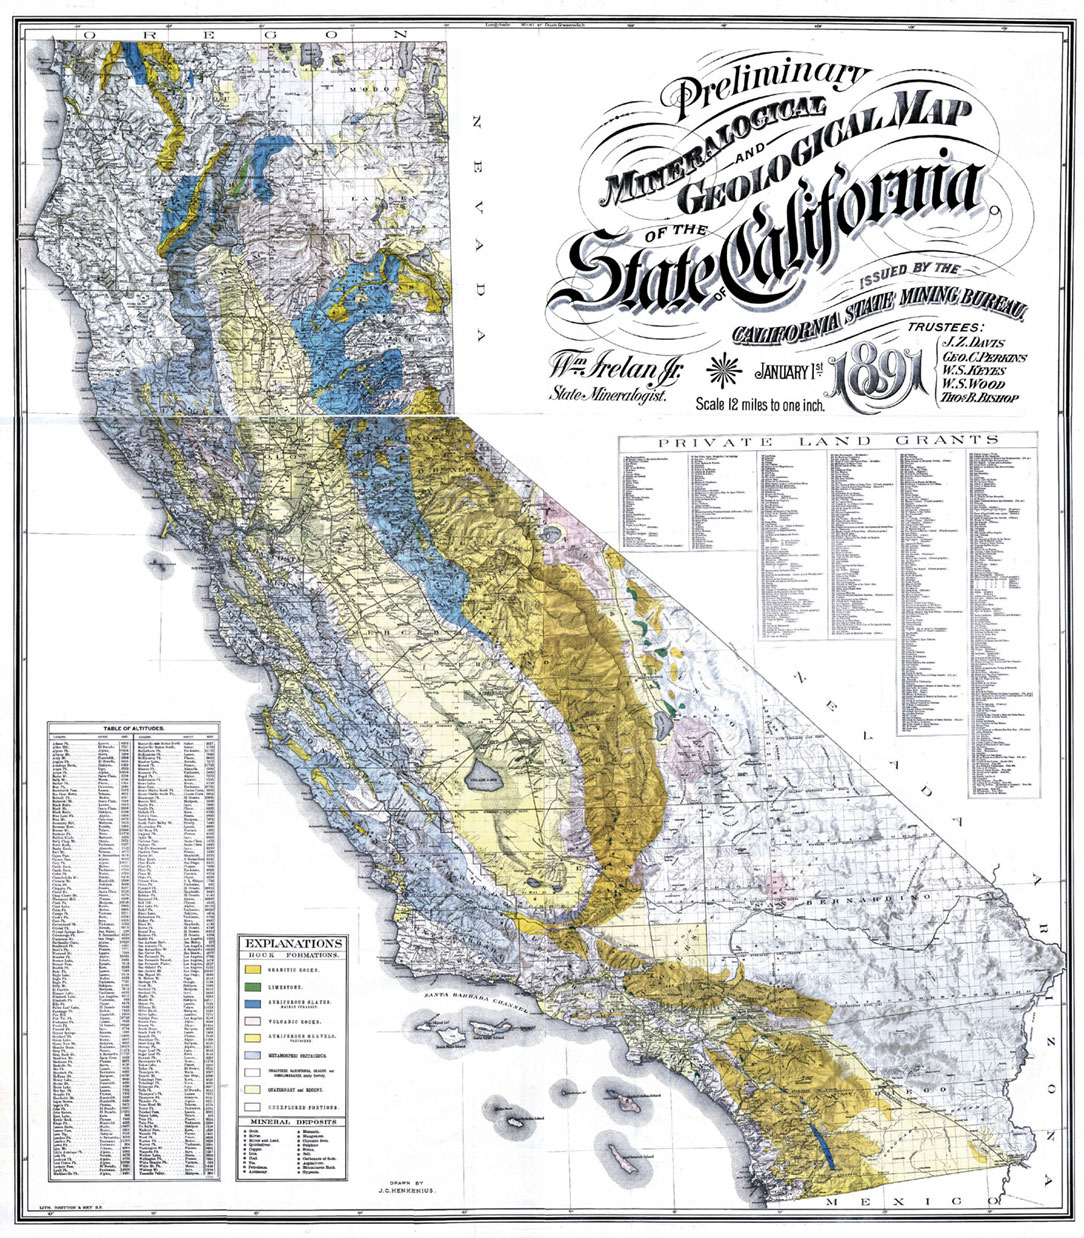 California Gold Claims Map - Klipy - Gold In California Map